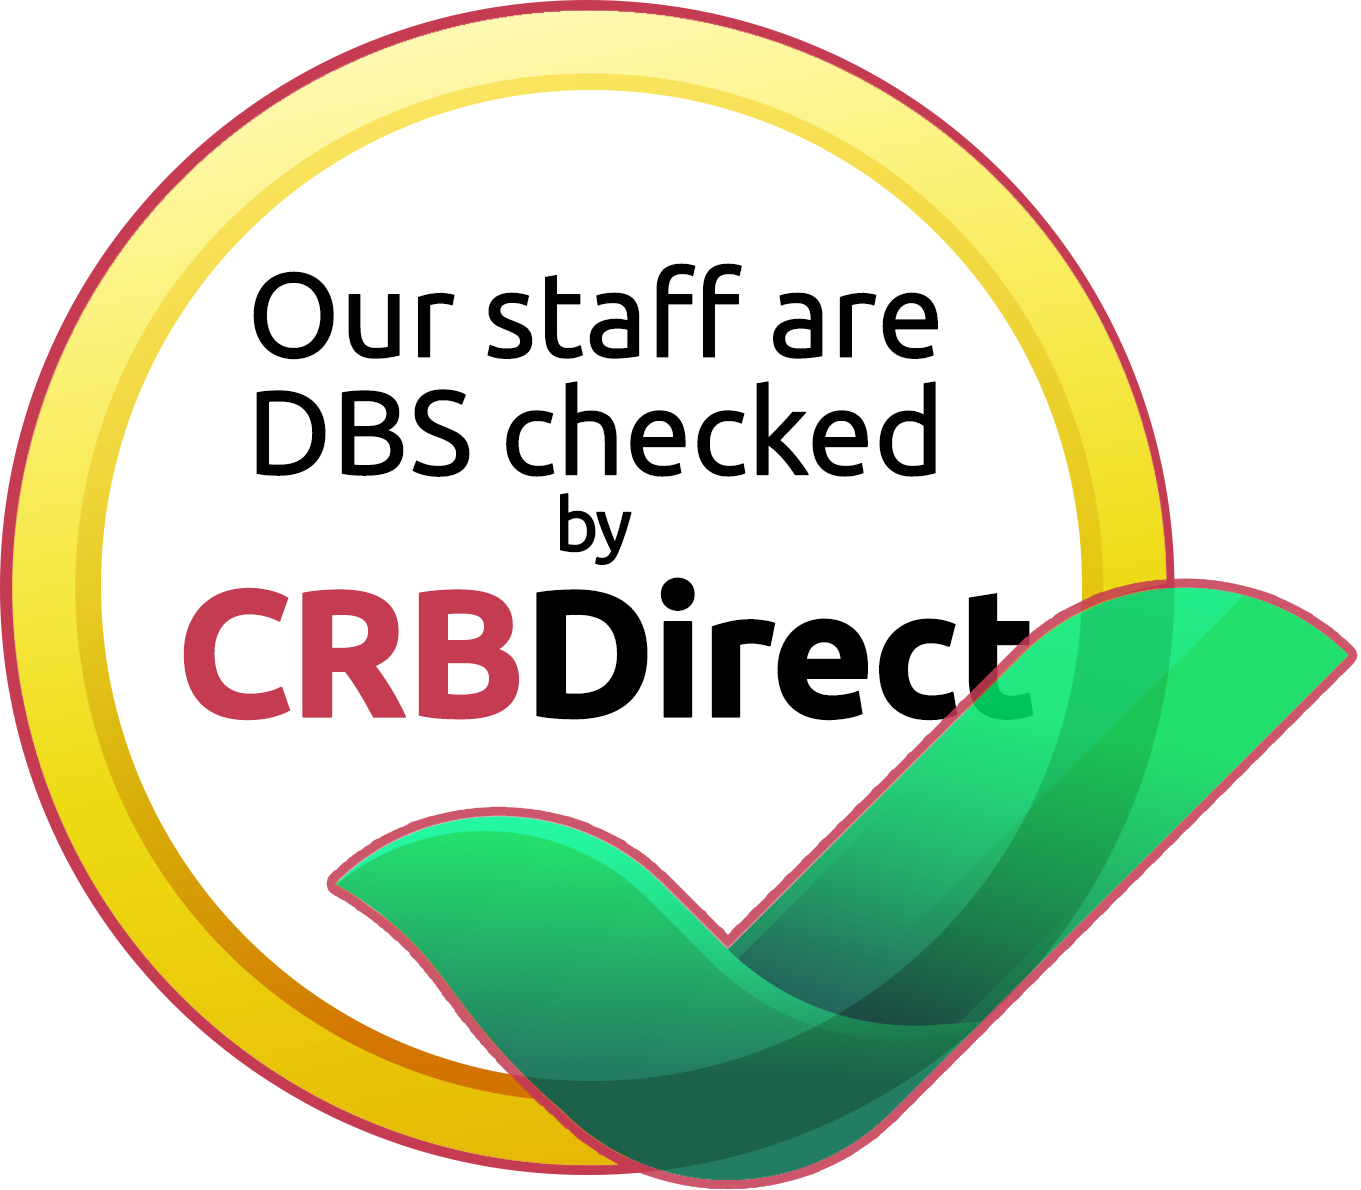 crb_direct